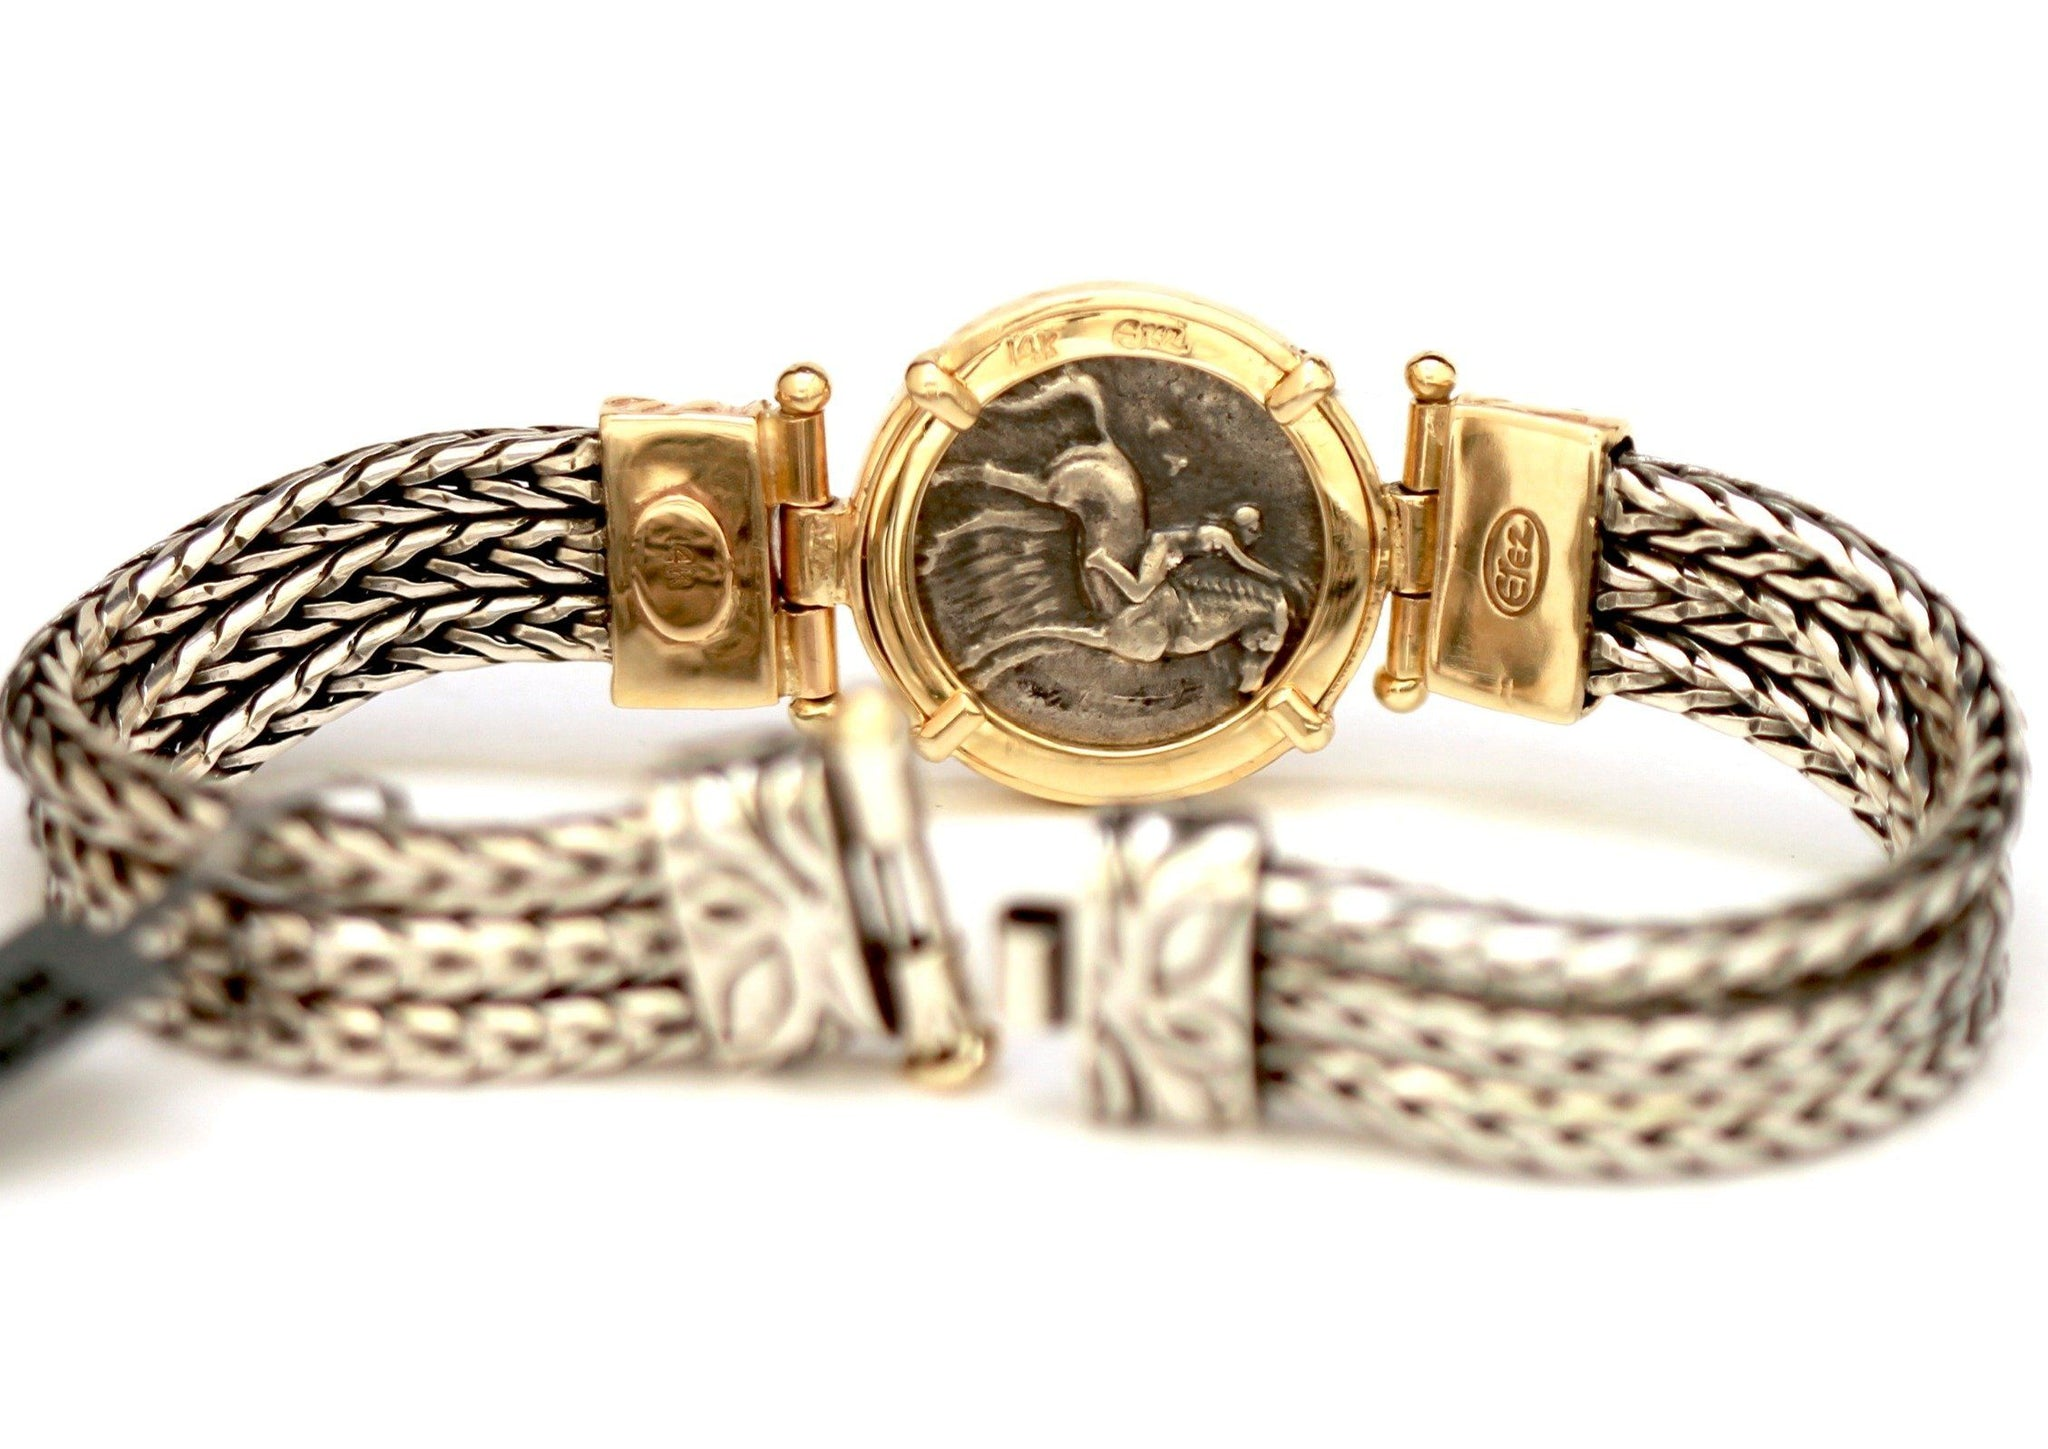 Greek coin, Boy on a Dolphin Bracelet, Gold setting, silver bracelet, 3 strands, , certificate ID13101 - Erez Ancient Coin Jewelry, ancient coin jewelry, men jewelry, genuine ancient coins, made in the US